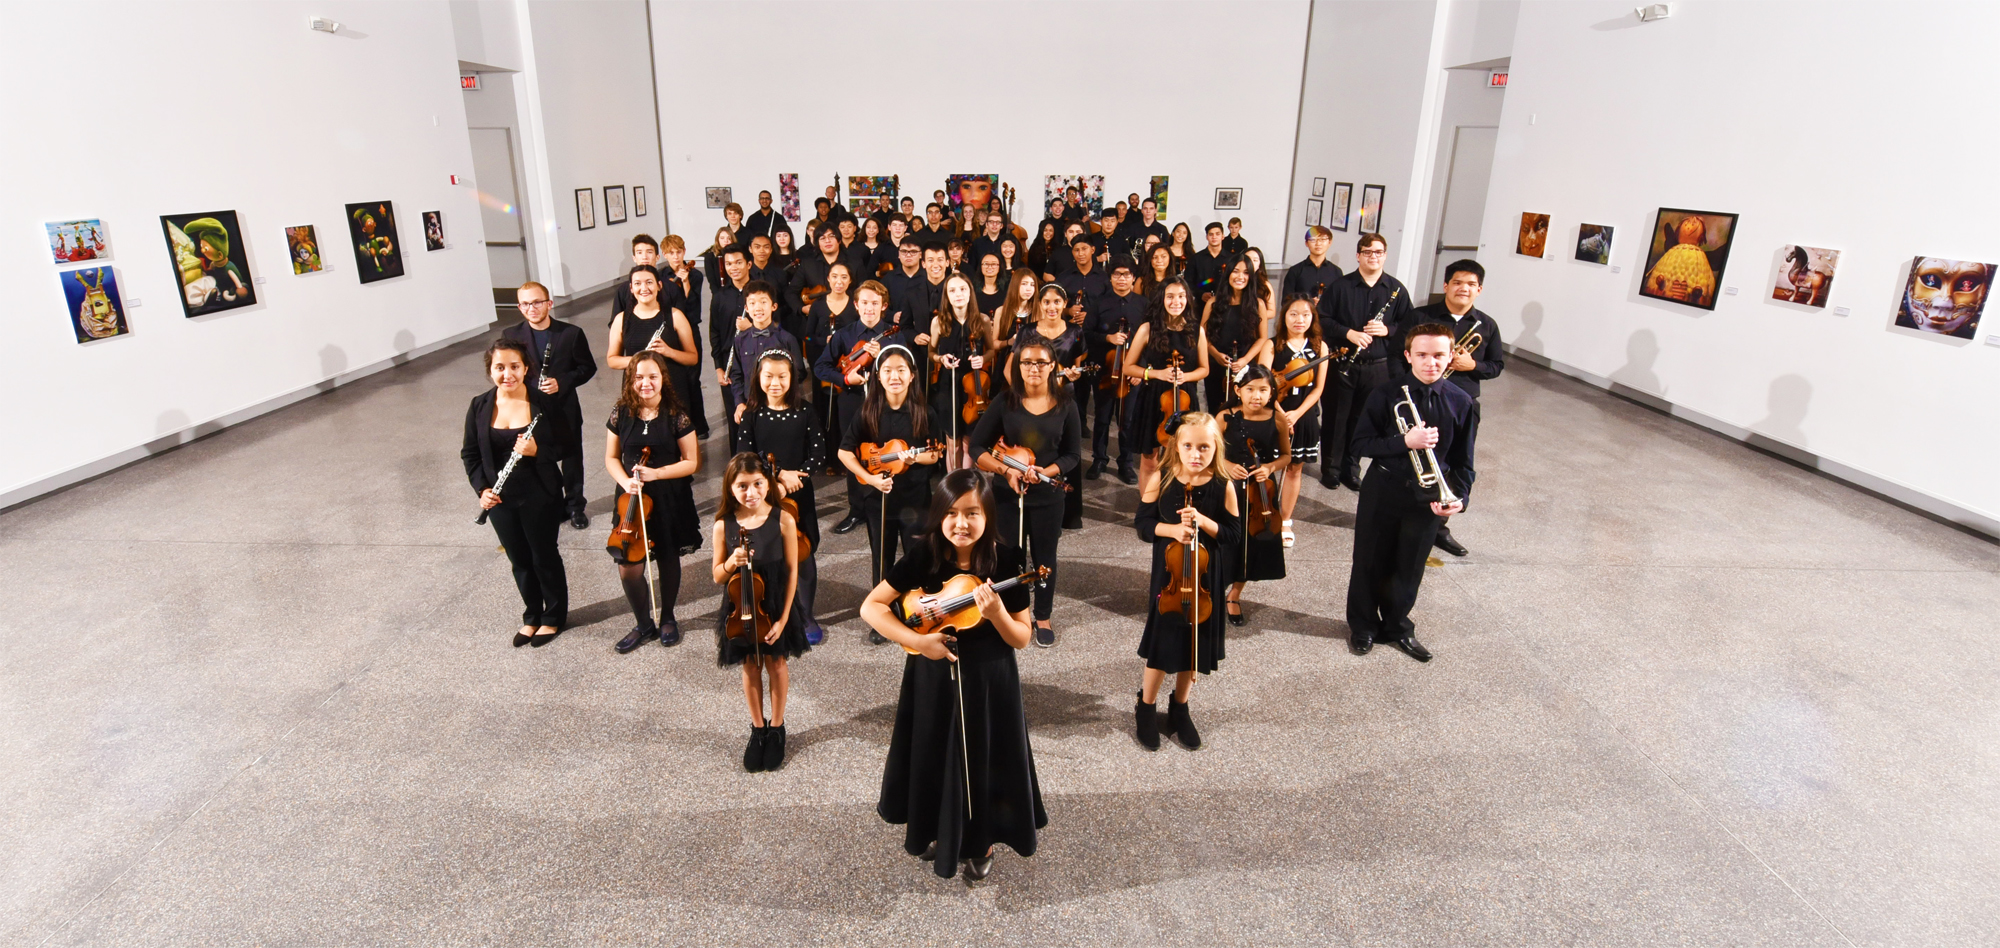 Members of the 2016 Young Artists Orchestra Symphony & Academy at the Studio Gallery in Las Vegas - Photo by Kevin Glover